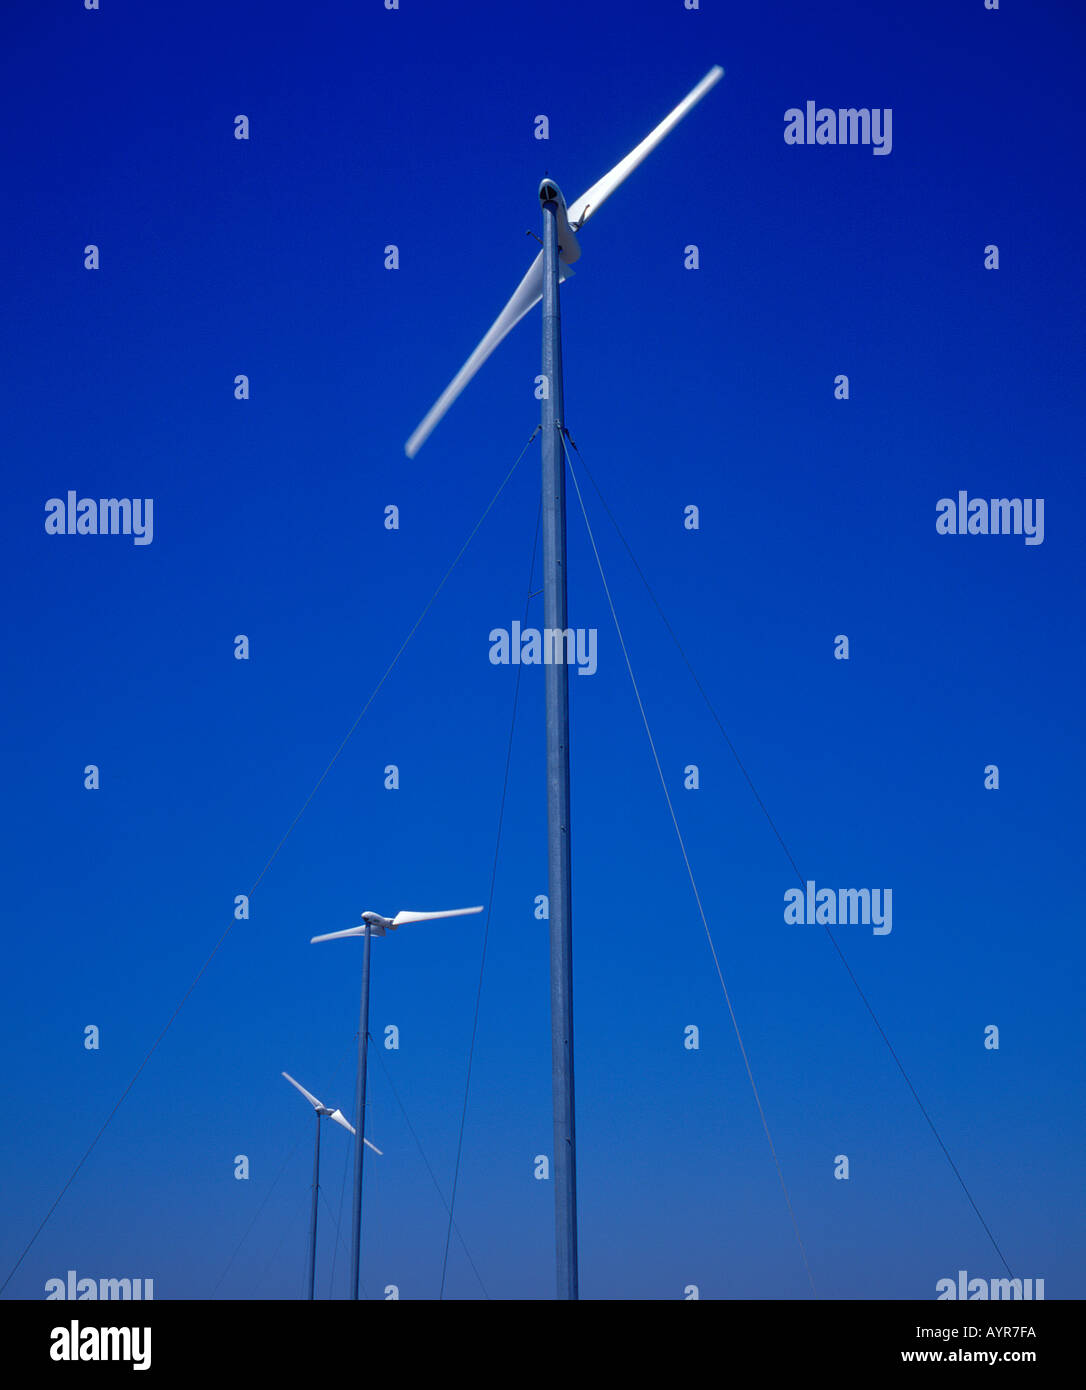 two bladed windmills. Photo by Willy Matheisl - Stock Image